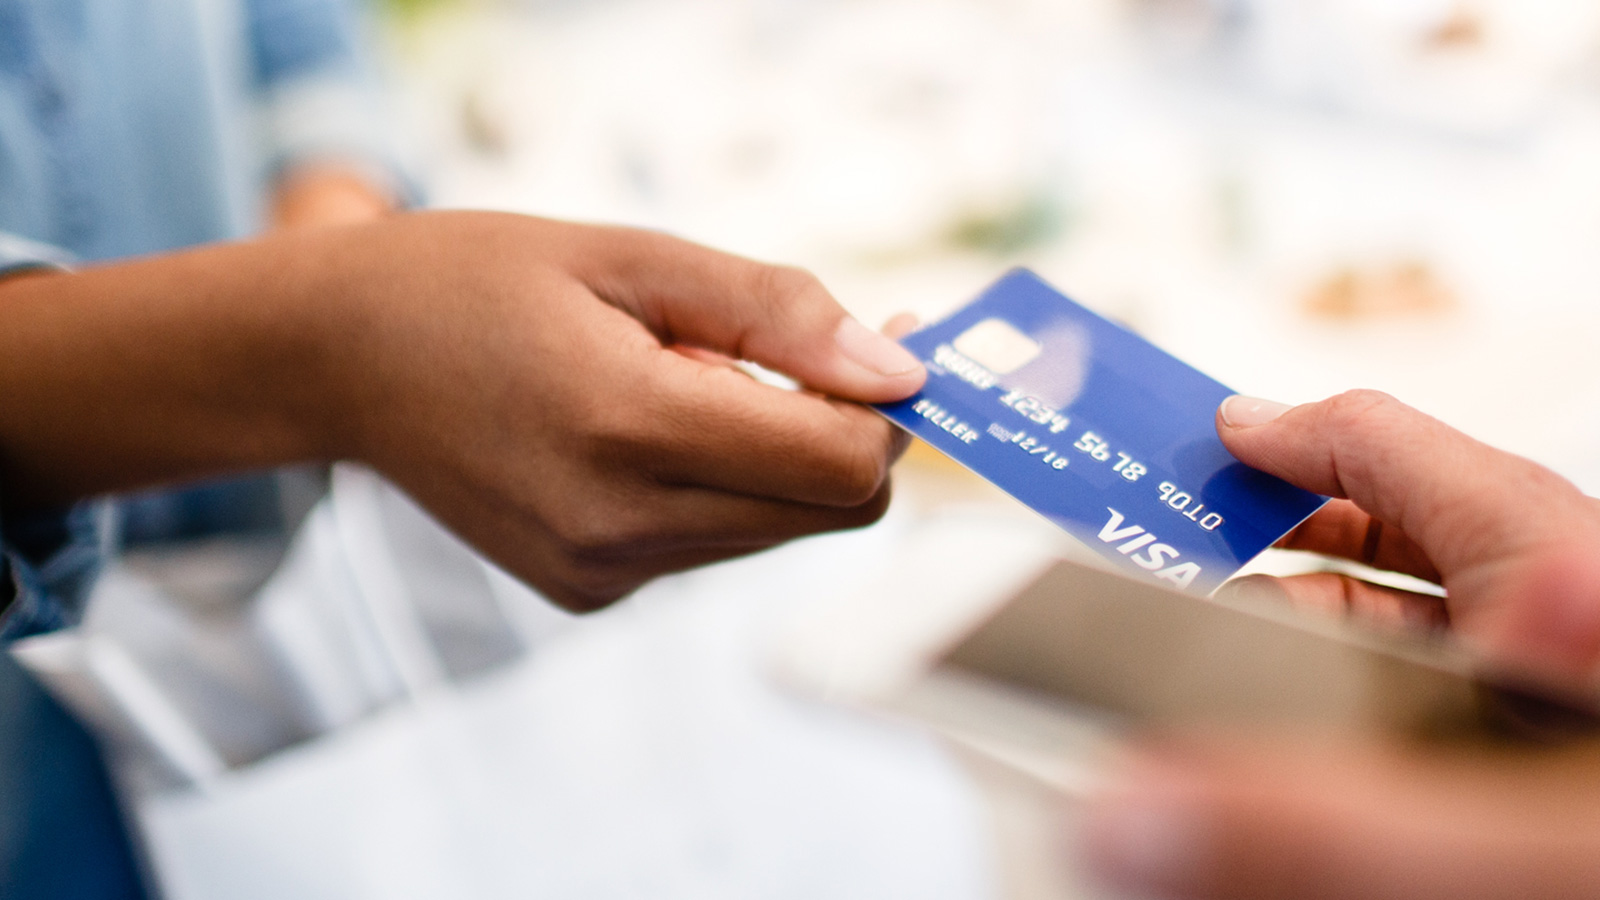 Woman handing Visa card to clerk for purchase.